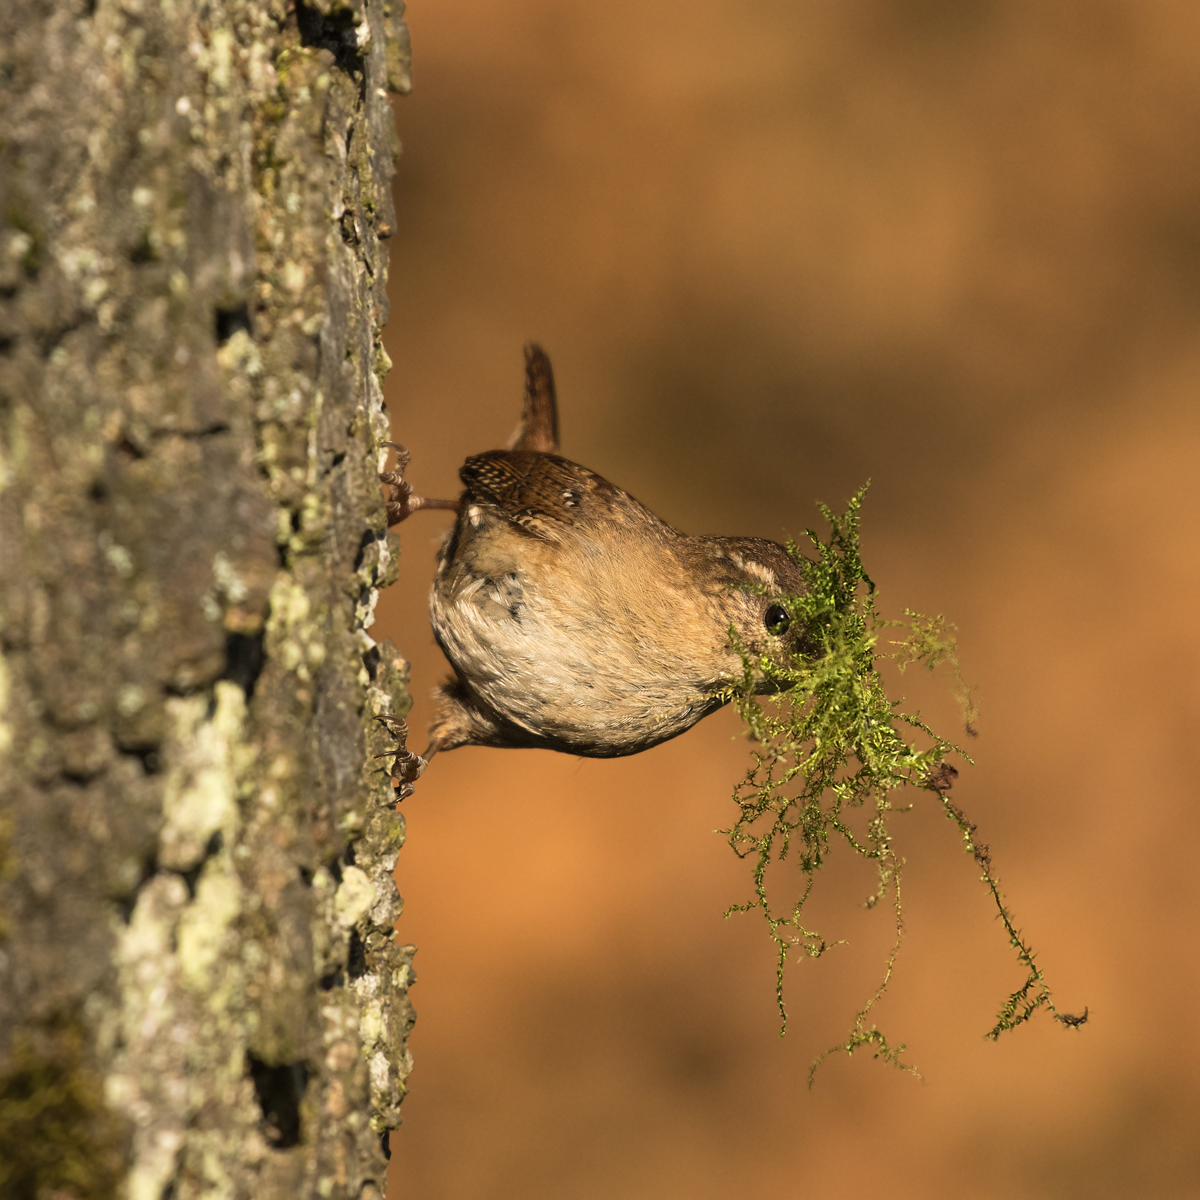 2ND WREN WITH NESTING MATERIAL BY JOE DOBSON DIV 2 PROJECTED